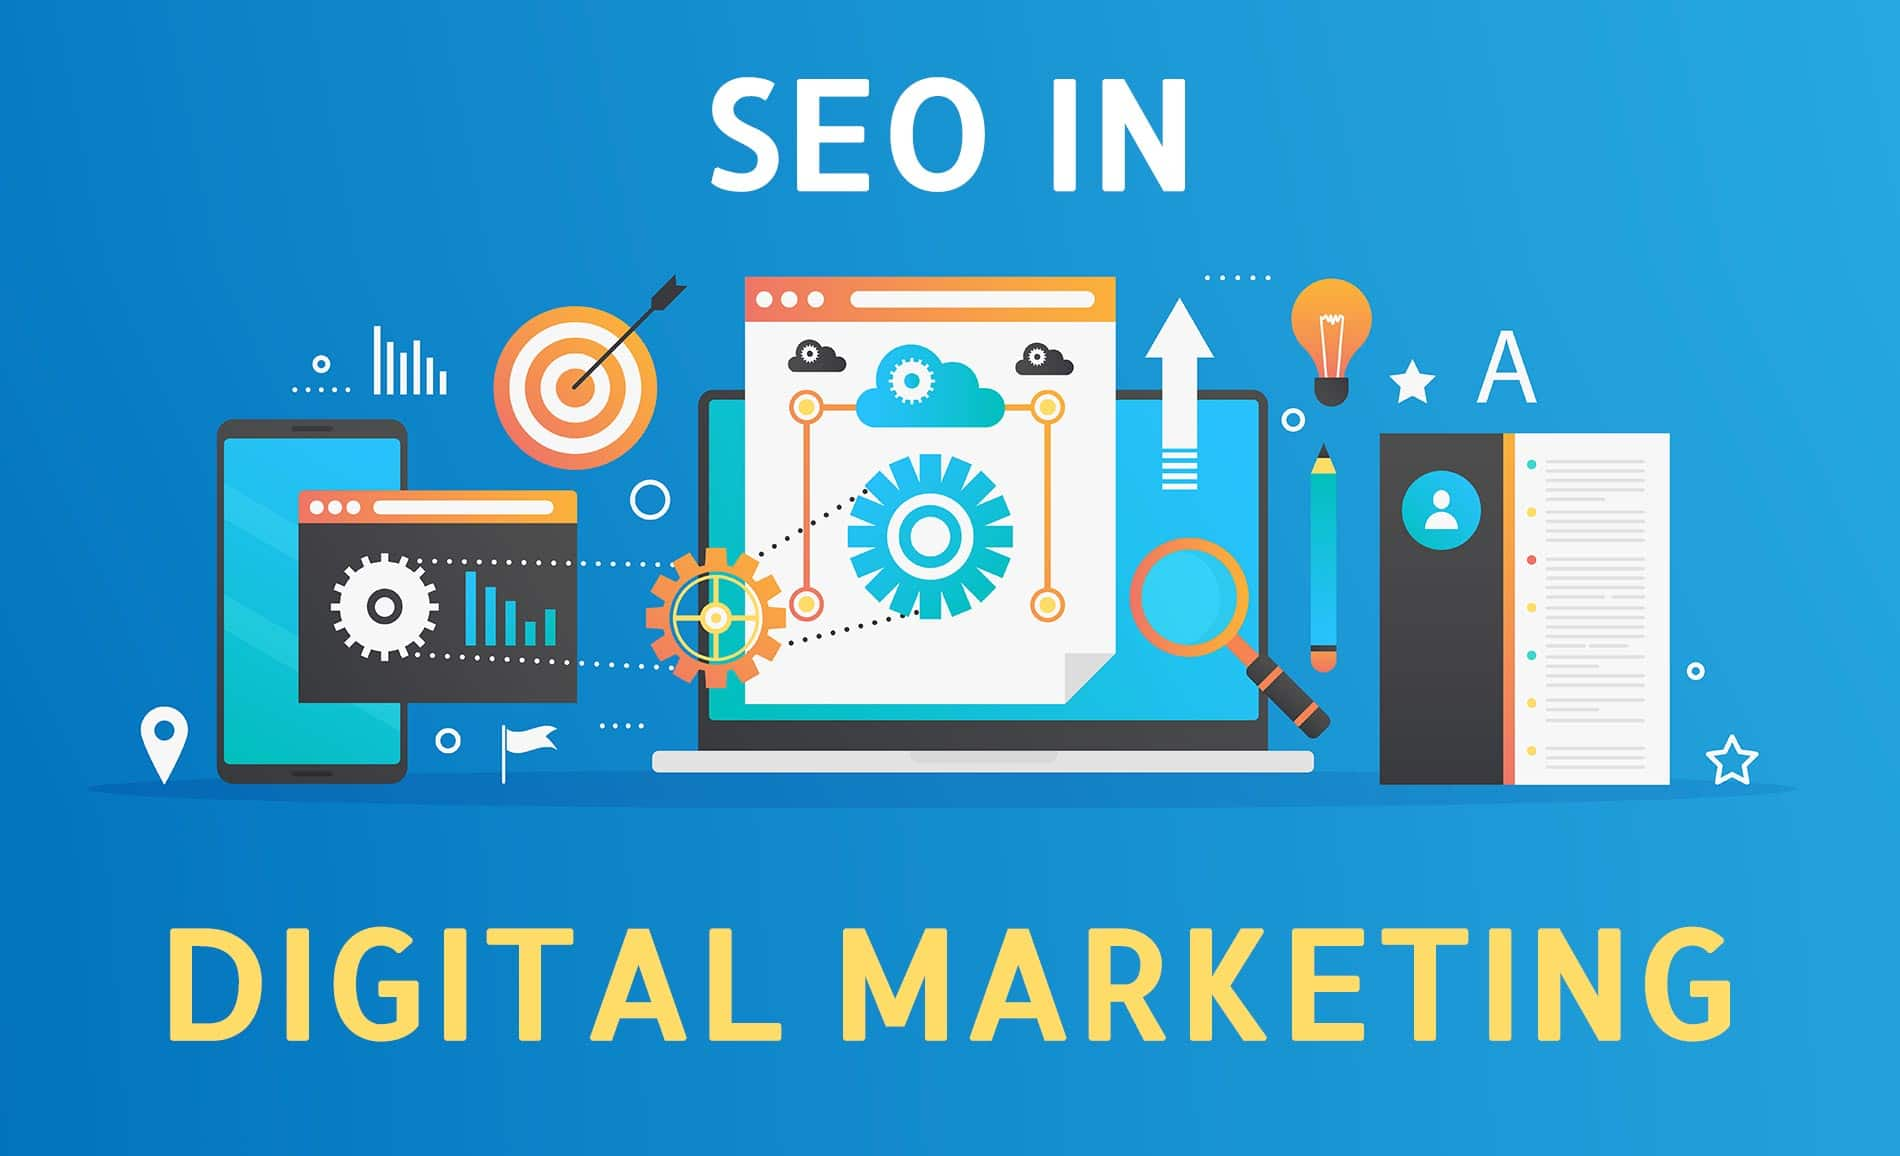 Internet marketing is never complete without SEO